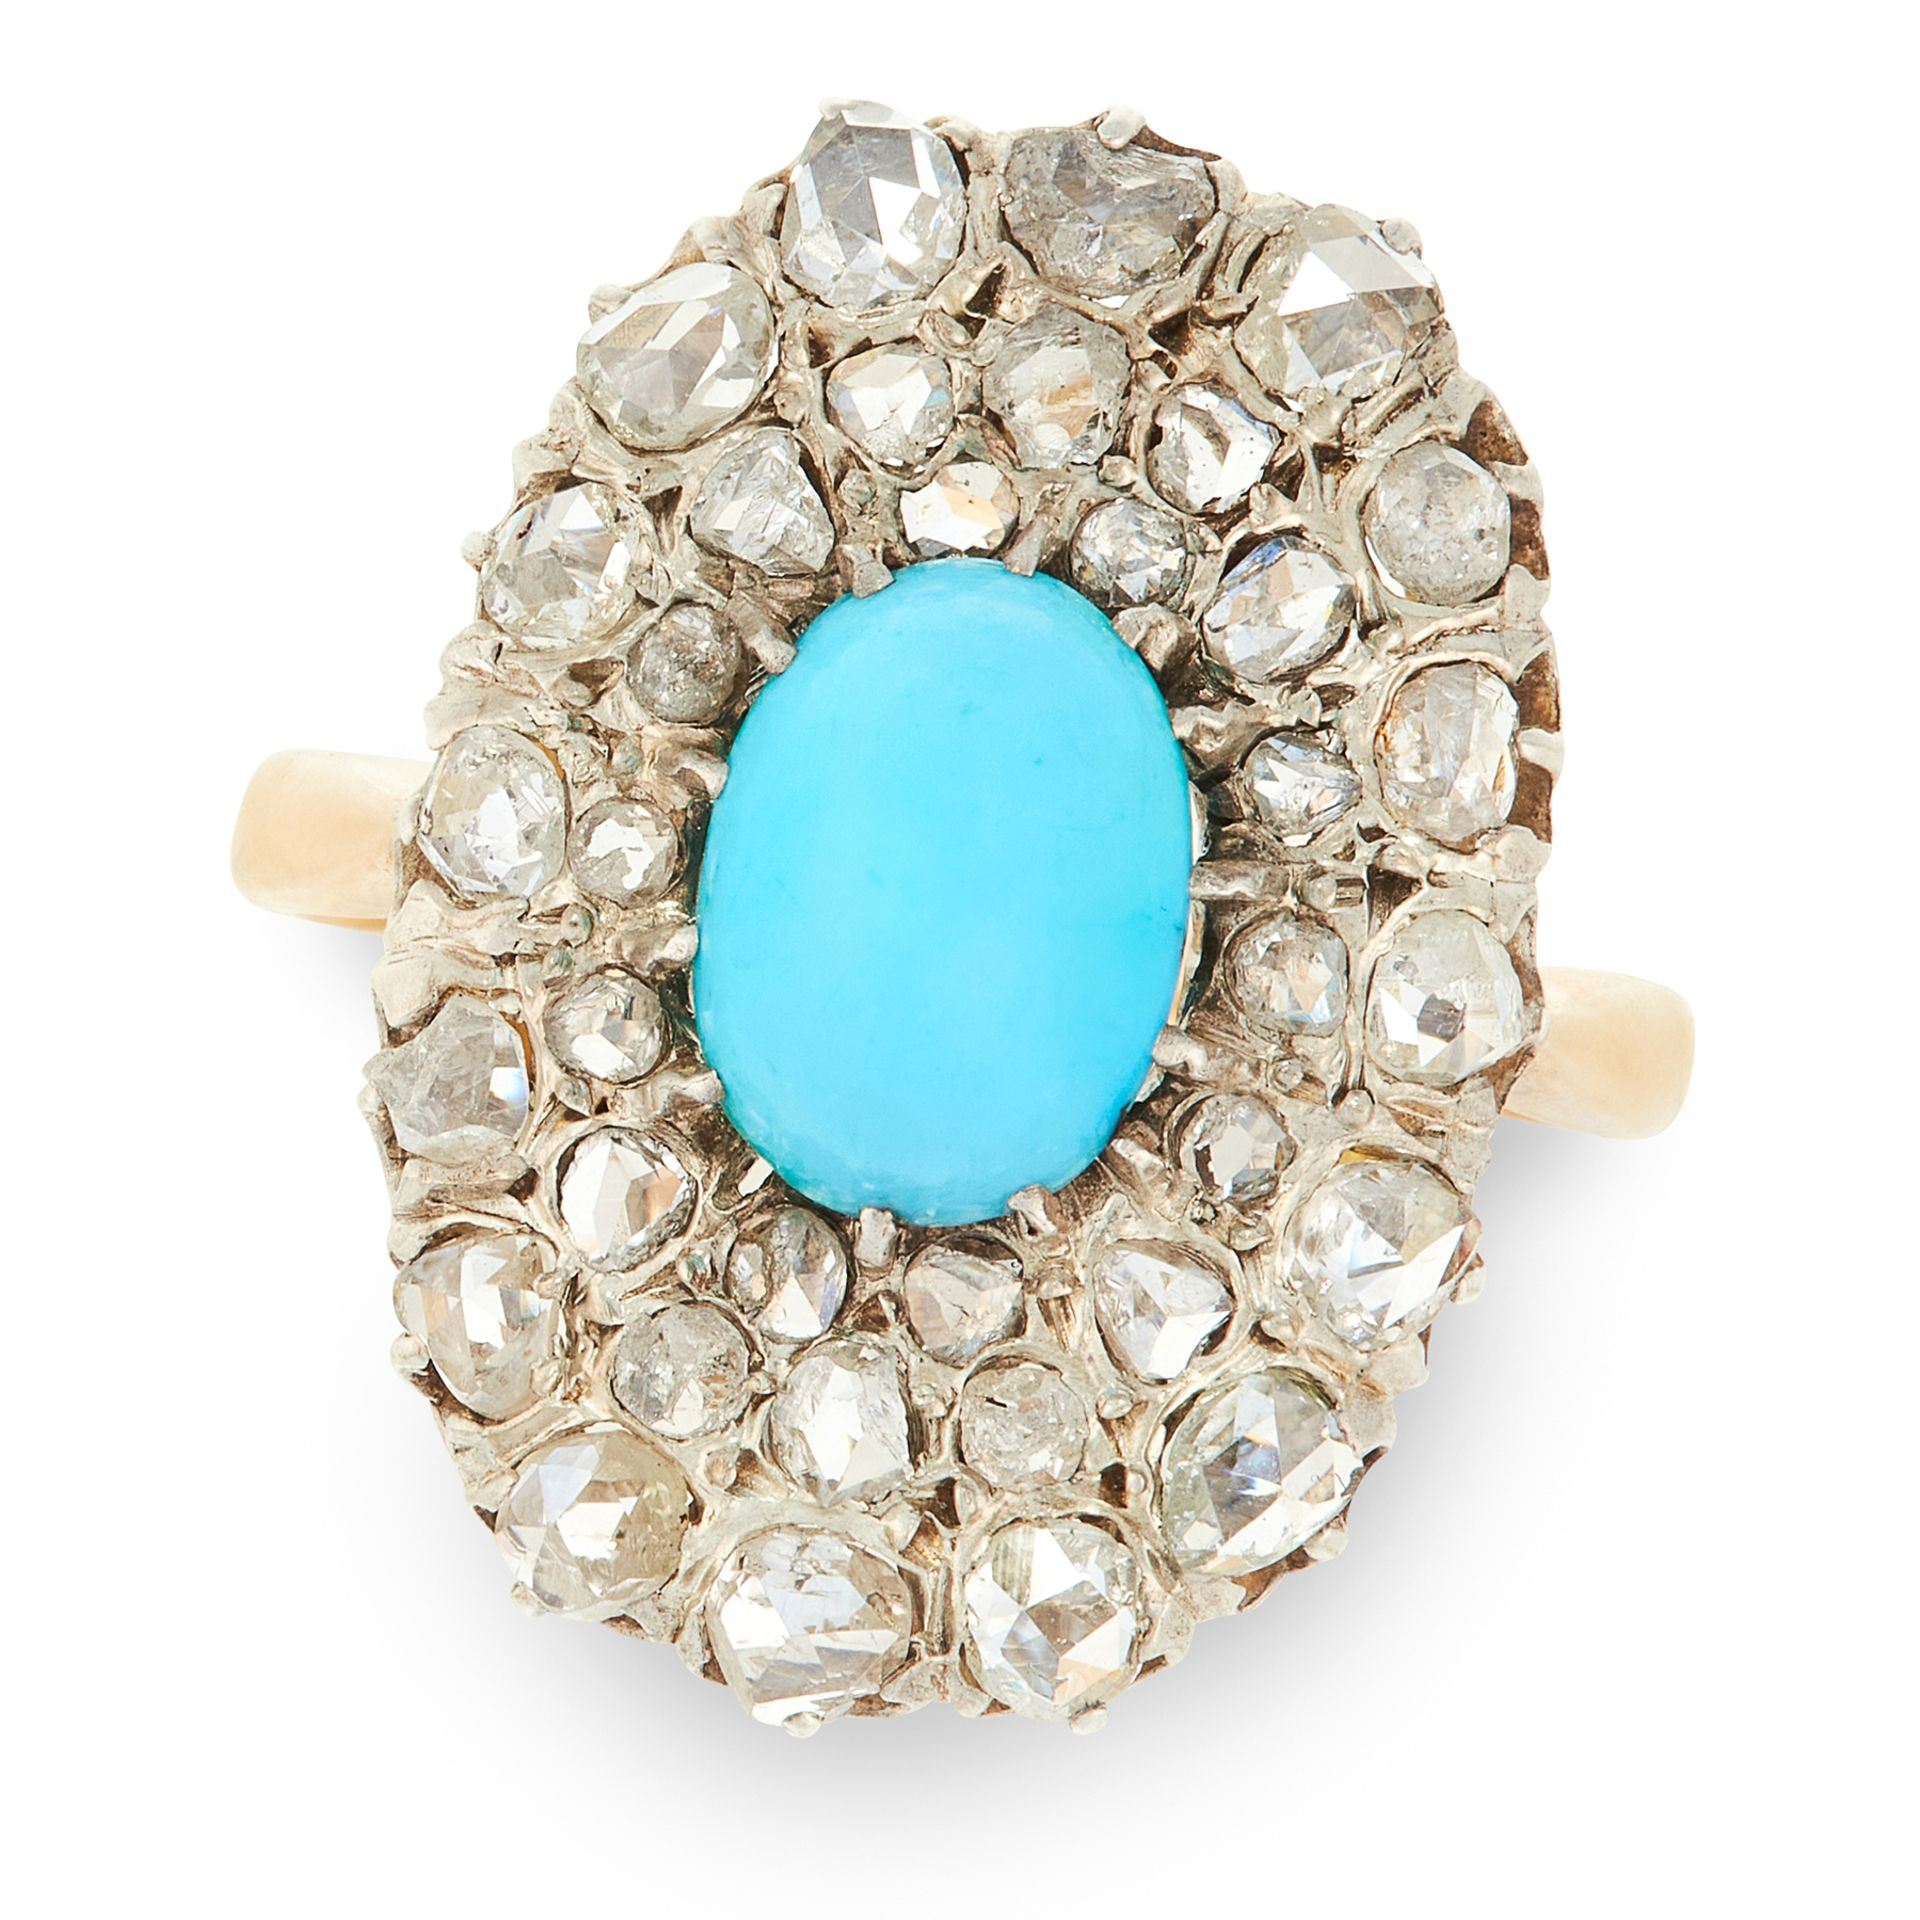 A TURQUOISE AND DIAMOND CLUSTER RING in 18ct yellow gold and silver, set with an oval cabochon